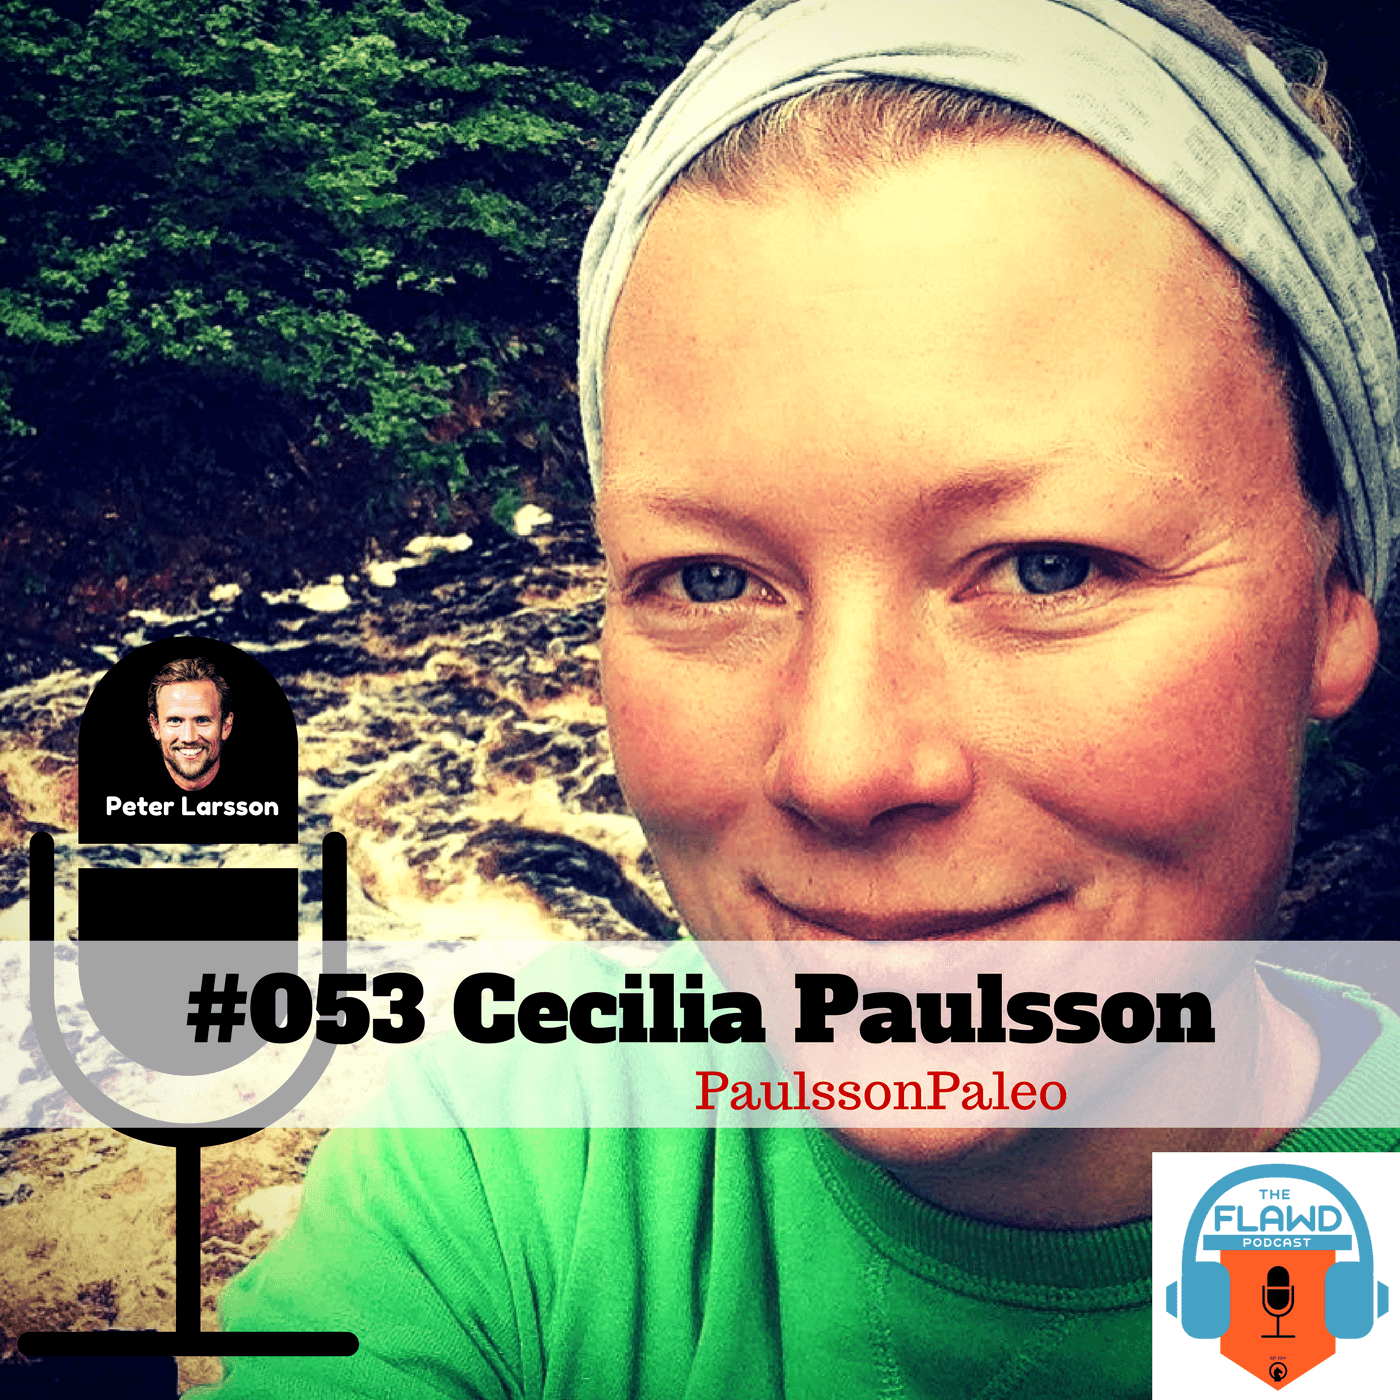 Cecilia Paulsson- PaulssonPaleo – The FLAWD Podcast (#053)